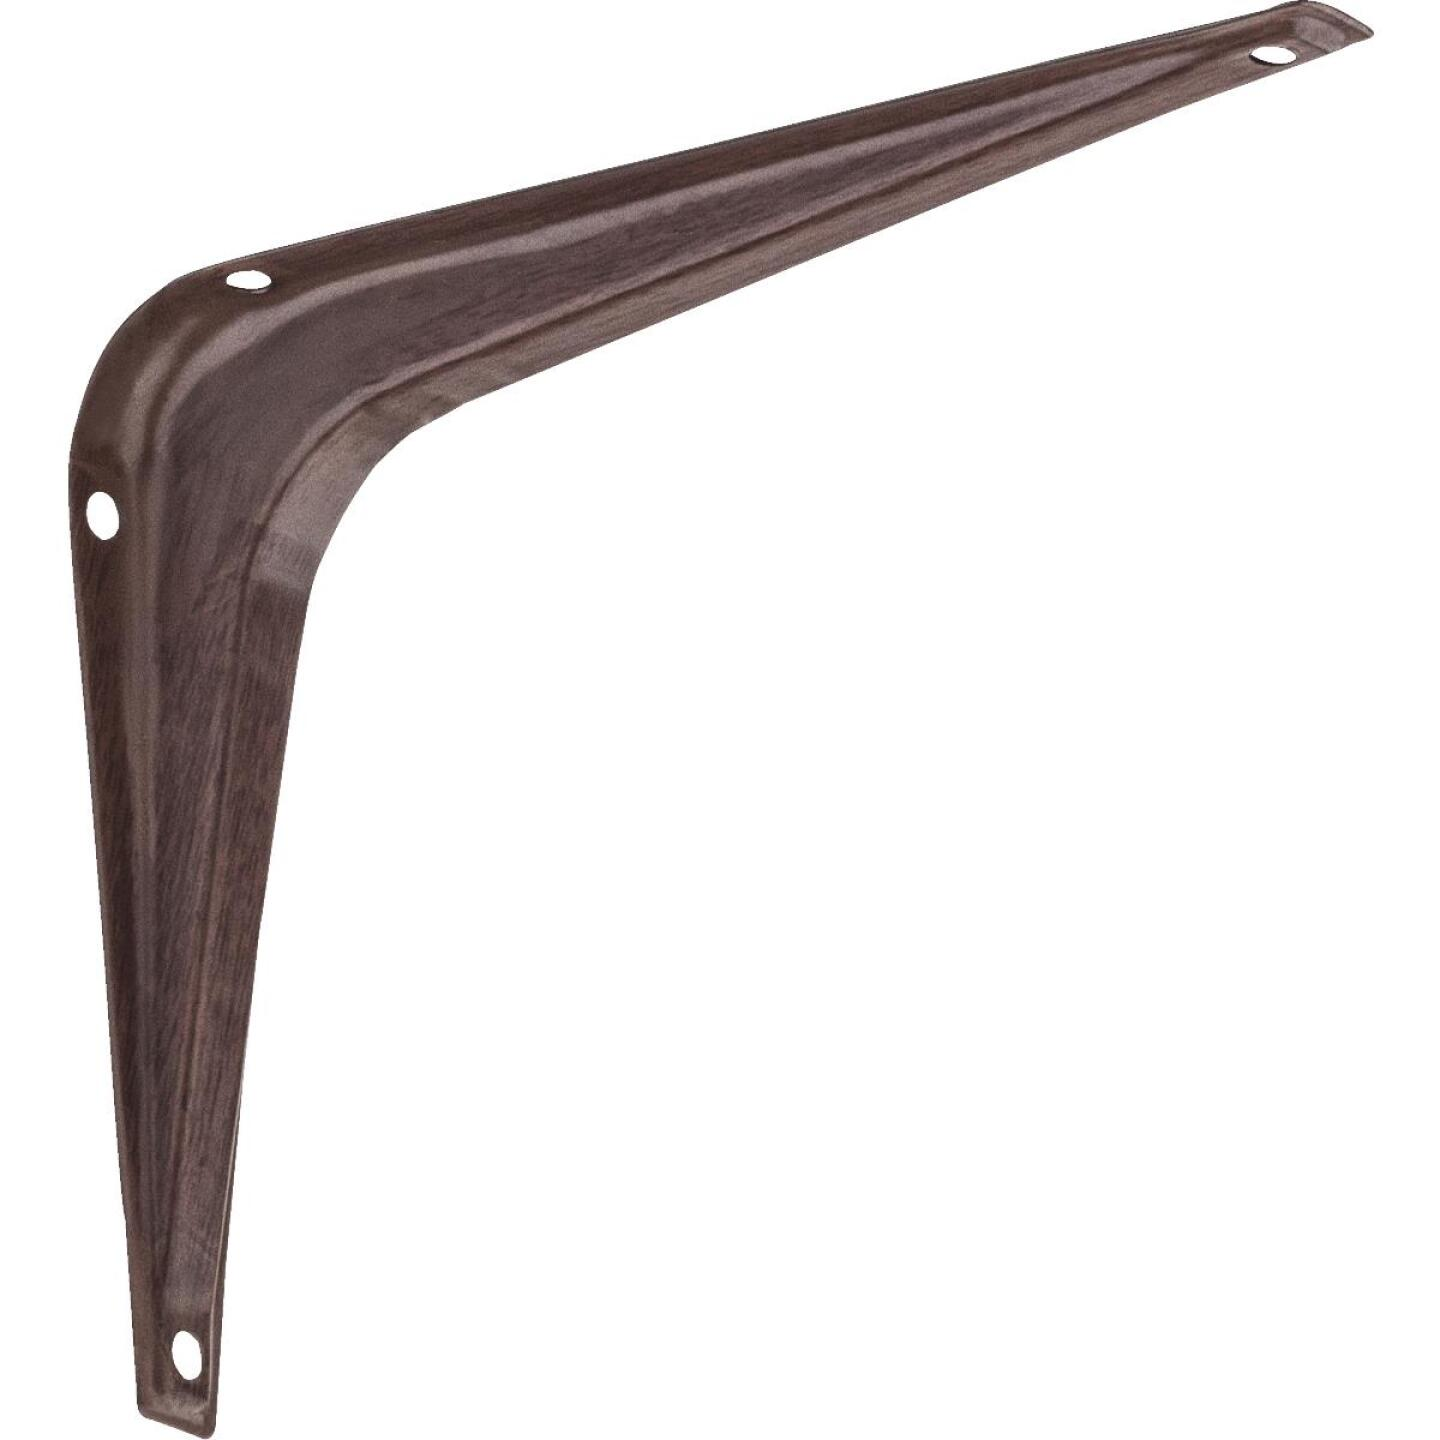 National 211 5 In. D. x 6 In. H. Fruitwood Steel Shelf Bracket Image 1